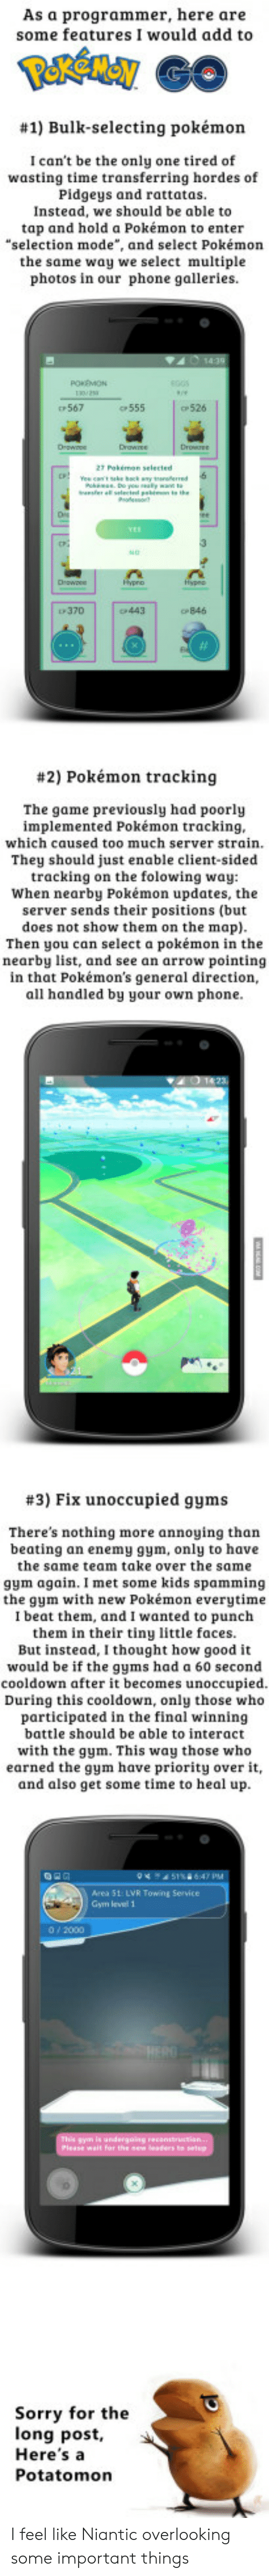 """Gym, Phone, and Pokemon: As a programmer, here are  some features I would add to  #1) Bulk-selecting pokémon  I can't be the only one tired of  wasting time transferring hordes of  Pidgeys and rattatas.  Instead, we should be able to  tap and hold a Pokémon to enter  """"selection mode"""", and select Pokémon  the same way we select multiple  photos in our phone galleries.  567  c555  526  P370  443  CP846  #2) Pokémon tracking  The game previously had poorly  implemented Pokémon tracking  which caused too much server strain  They should just enable client-sided  tracking on the folowing way  When nearby Pokémon updates, the  server sends their positions (but  does not show them on the map)  Then you can select a pokémon in the  nearby list, and see an arrow pointing  in that Pokémon's general direction,  all handled by your own phone  #3) Fix unoccupied gyms  There's nothing more annoying than  beating an enemy gym, only to have  the same team take over the same  gym again. I met some kids spamming  the gym with new Pokémon everytime  I beat them, and I wanted to punch  them in their tiny little faces.  But instead, I thought how good it  would be if the gyms had a 60 second  cooldown after it becomes unoccupied  During this cooldown, only those who  participated in the final winning  battle should be able to interact  with the gym. This way those who  earned the gym have priority over it,  and also get some time to heal up  Area 51: LVR Towing Service  Gym level 1  Sorry for the  long post  Here'sa  Potatomon I feel like Niantic overlooking some important things"""